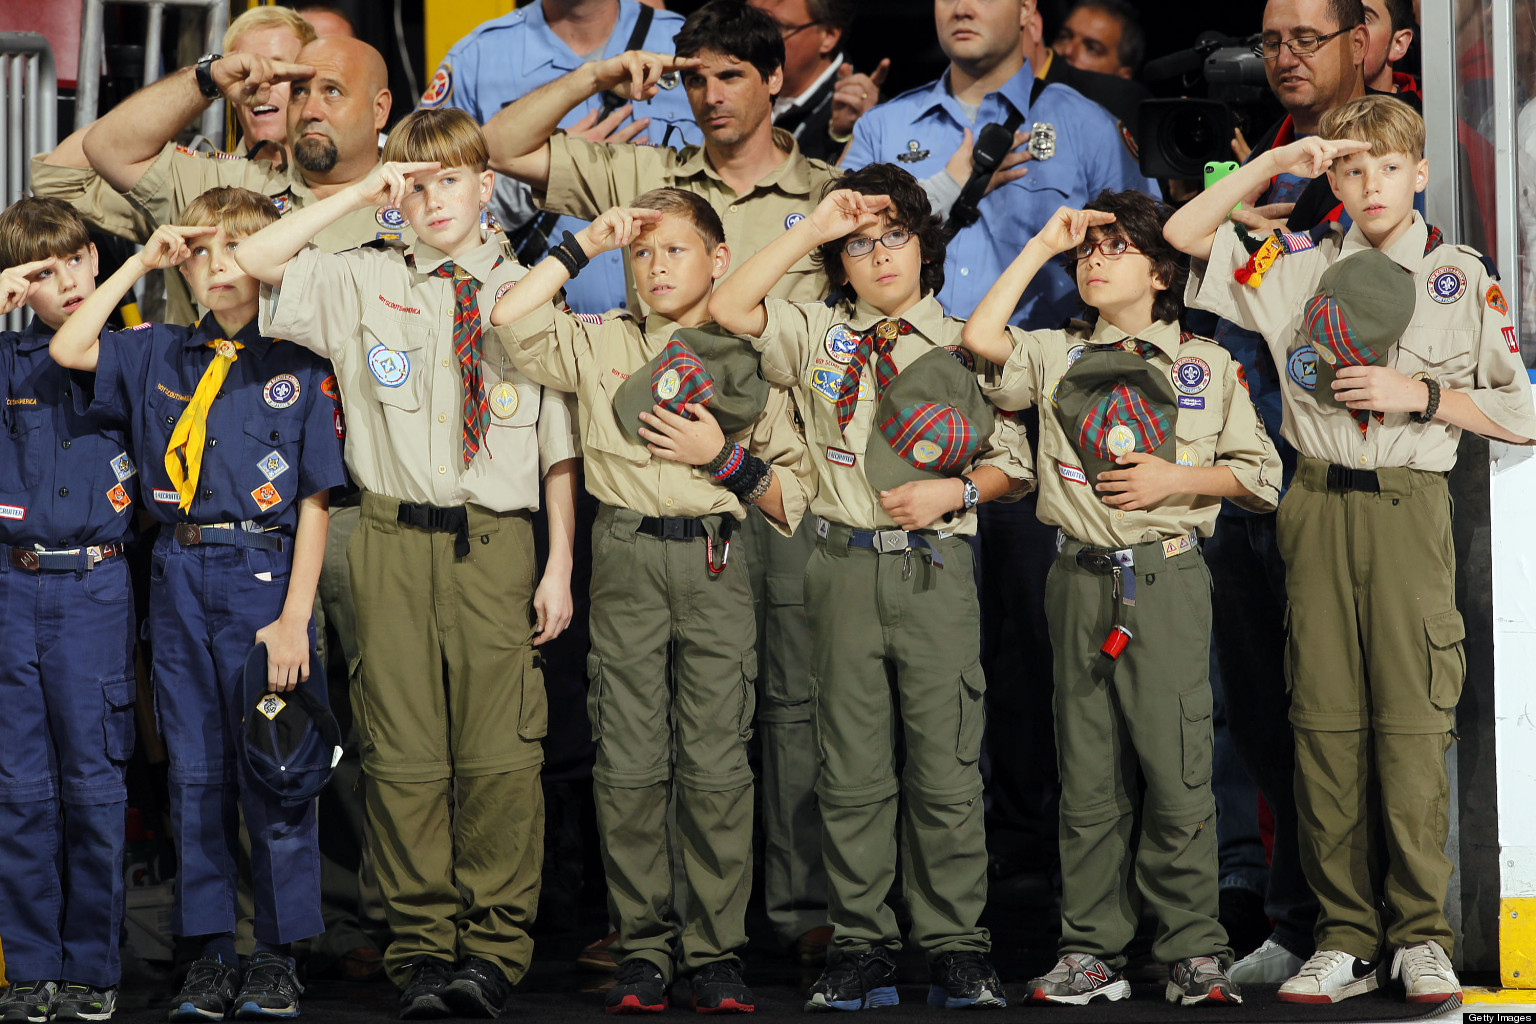 boy scouts banned by alabama pastor greg walker after gay youth  boy scouts banned by alabama pastor greg walker after gay youth policy lifted nationwide huffpost